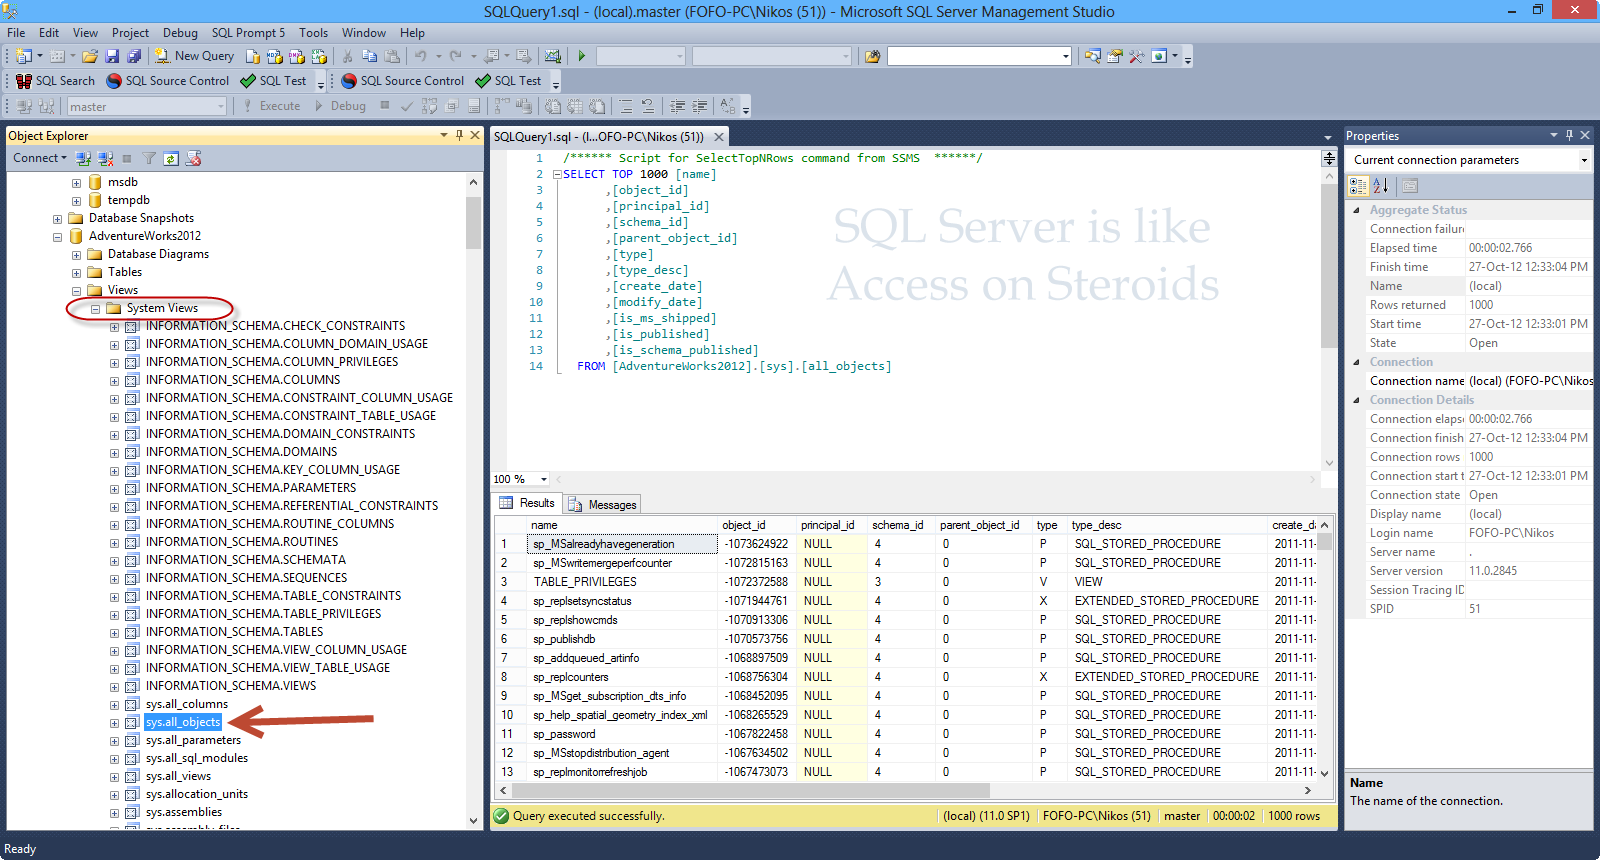 Excel and Access, LLC uses Microsoft SQL Server as a back-end to an Excel front-end